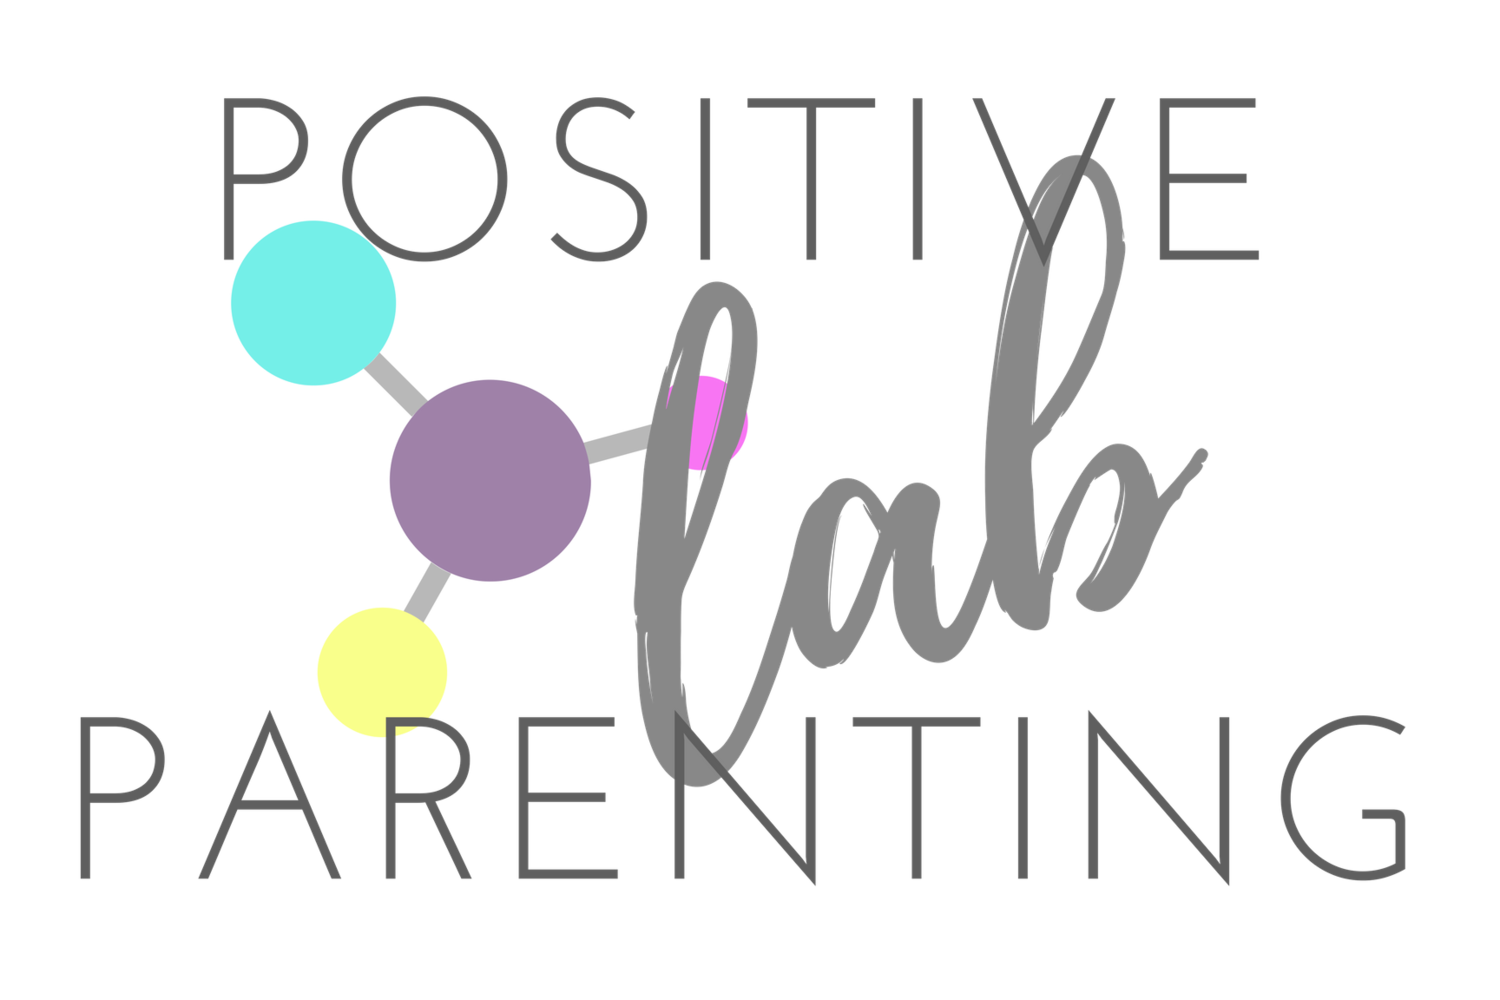 The Positive Parenting Lab